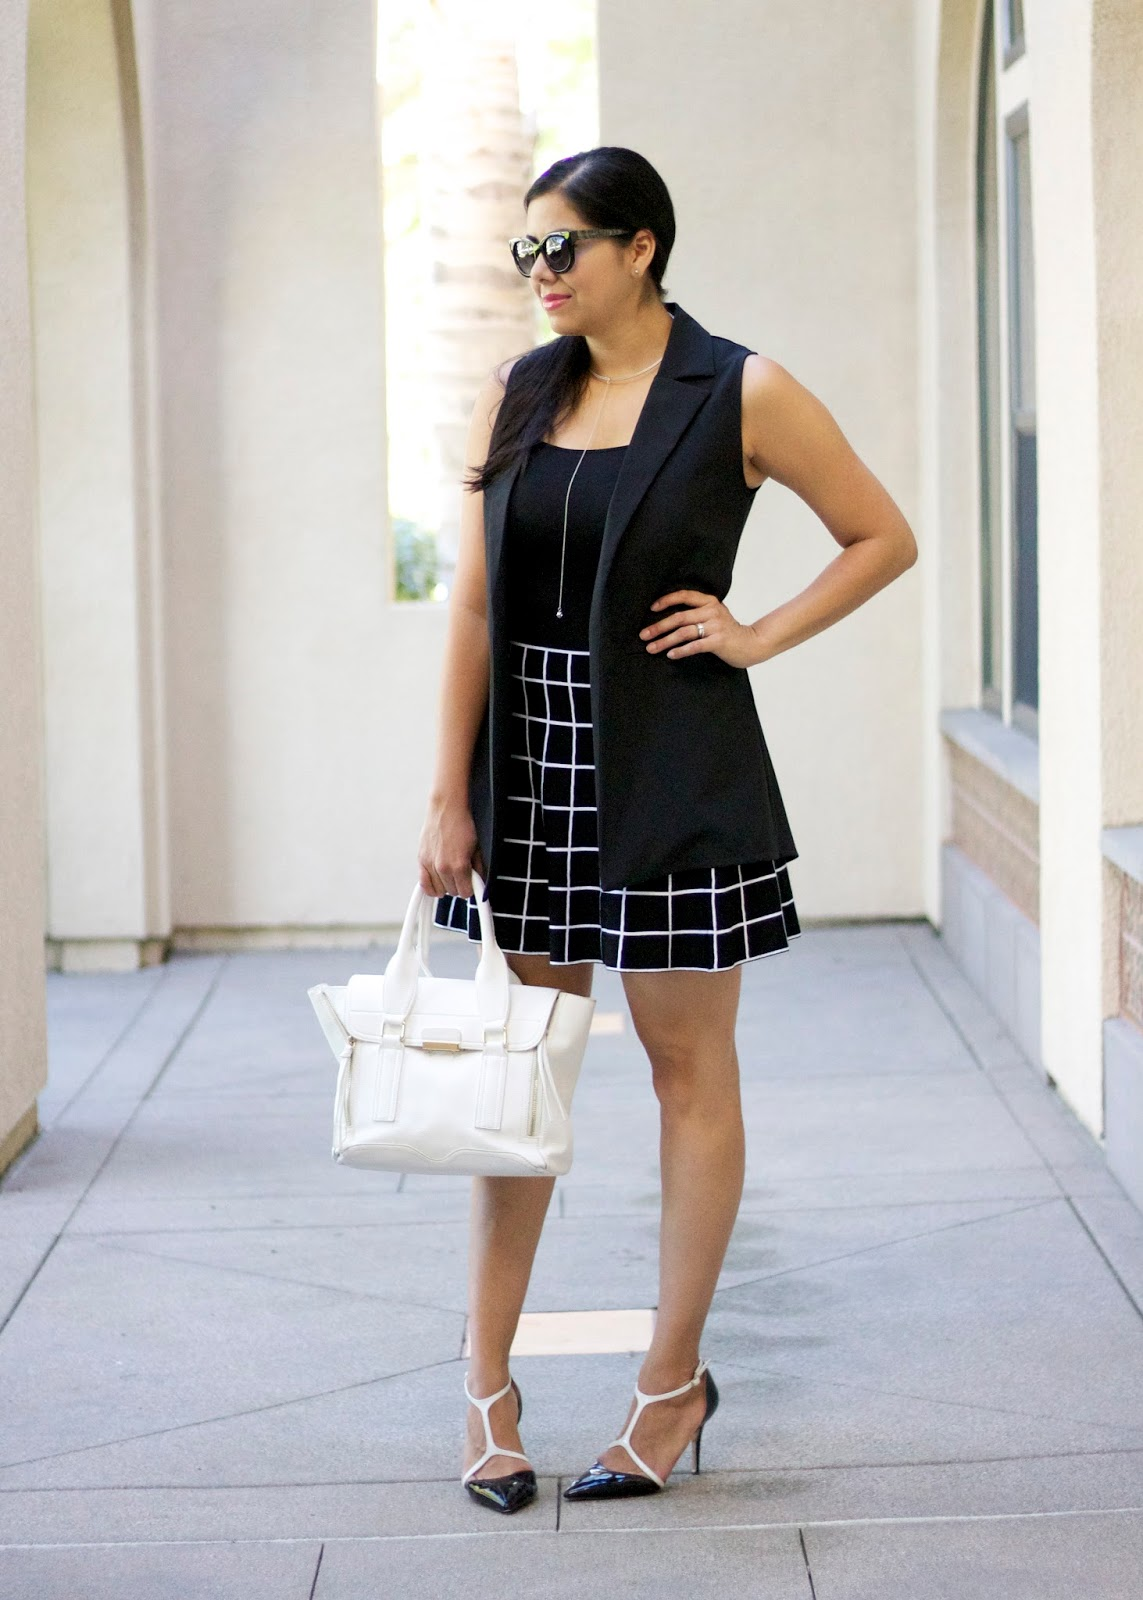 Black and White Grid Outfit, san diego fashion blogger, san diego fashion bloggers, san diego style, san diego street style